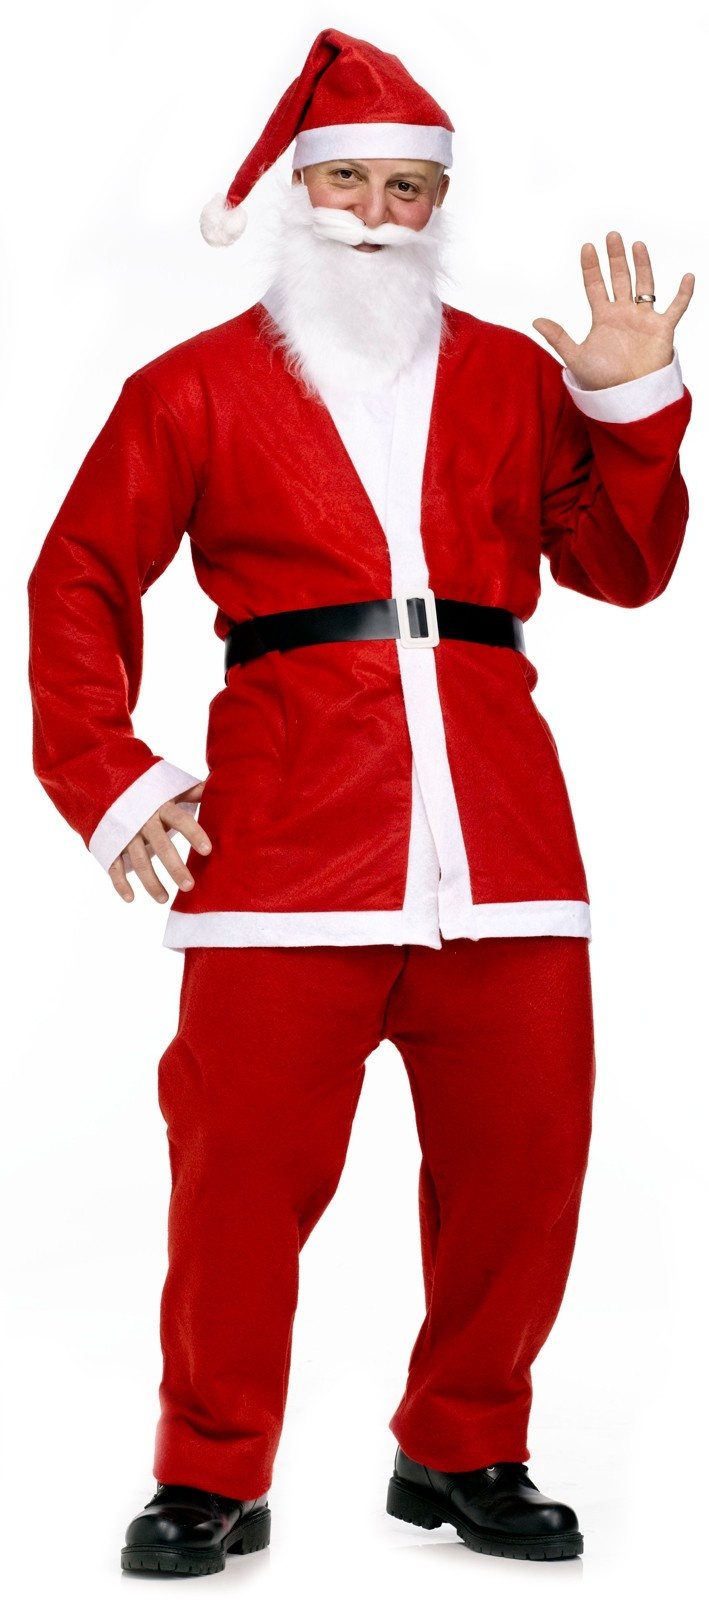 1000+ images about Christmas Costume - Male on Pinterest